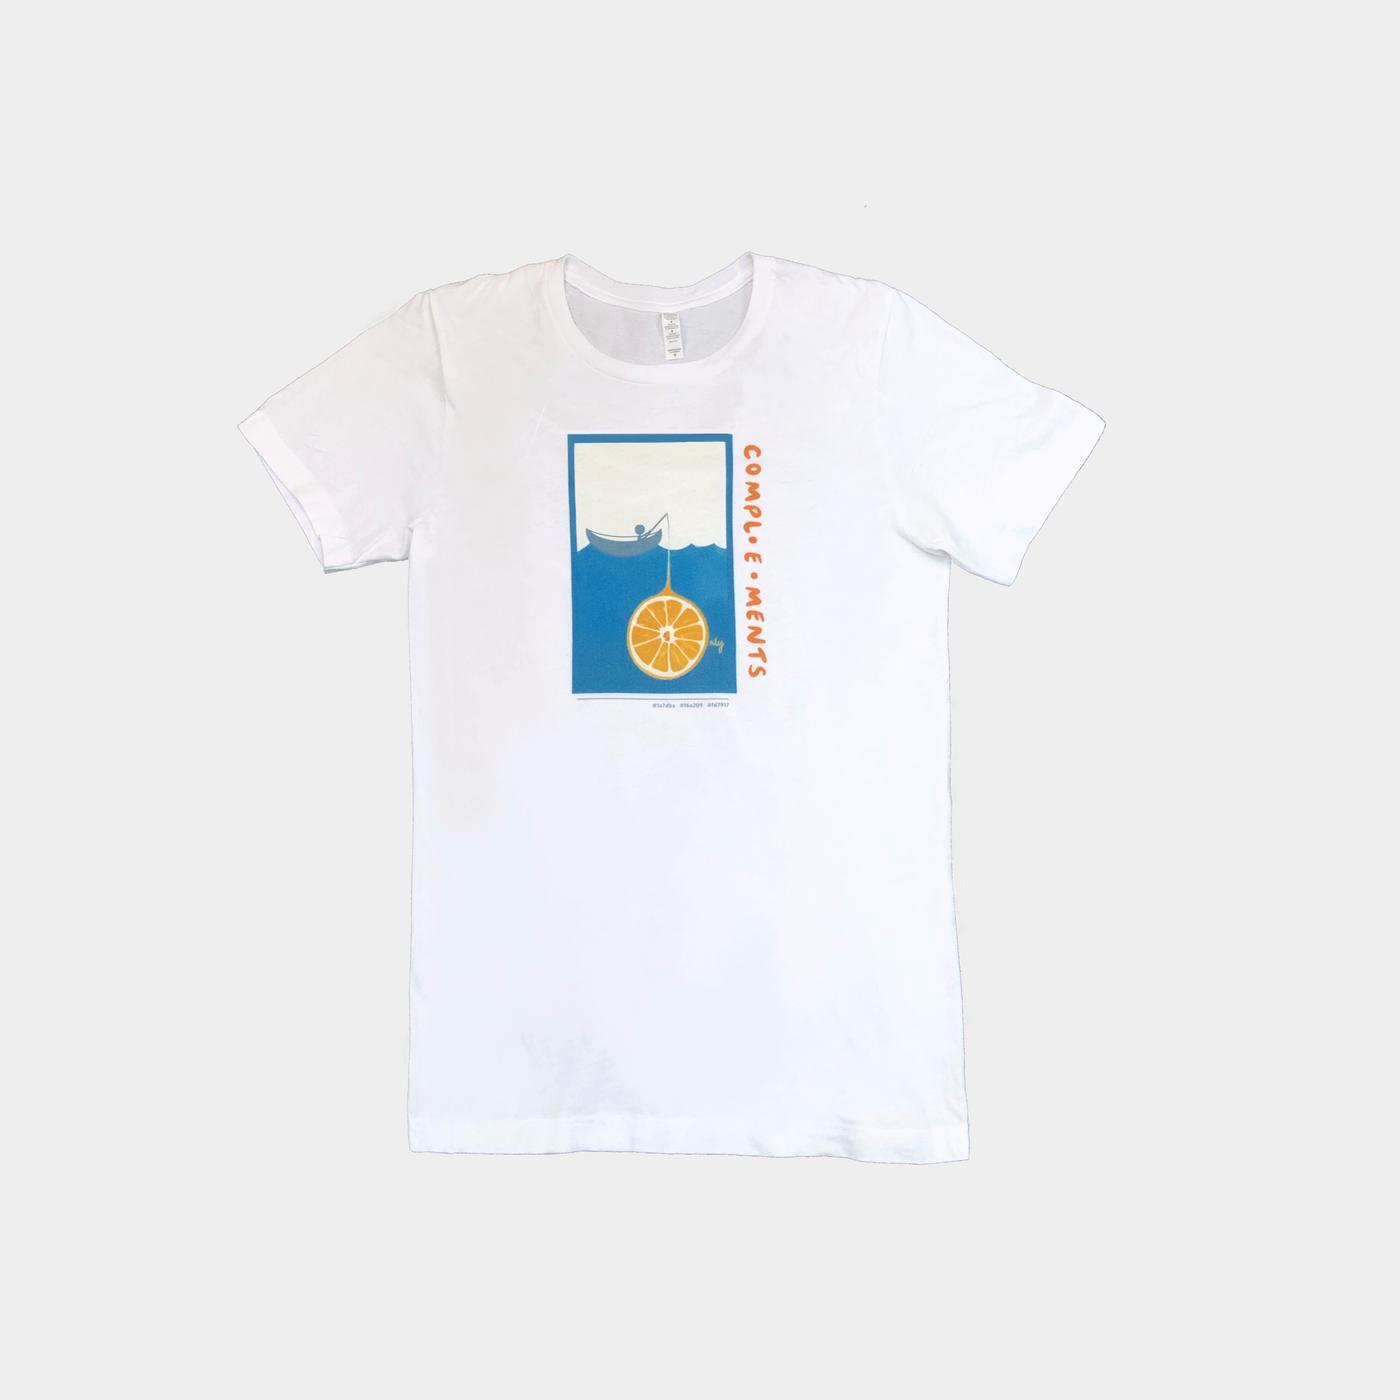 fishing for complements t-shirt